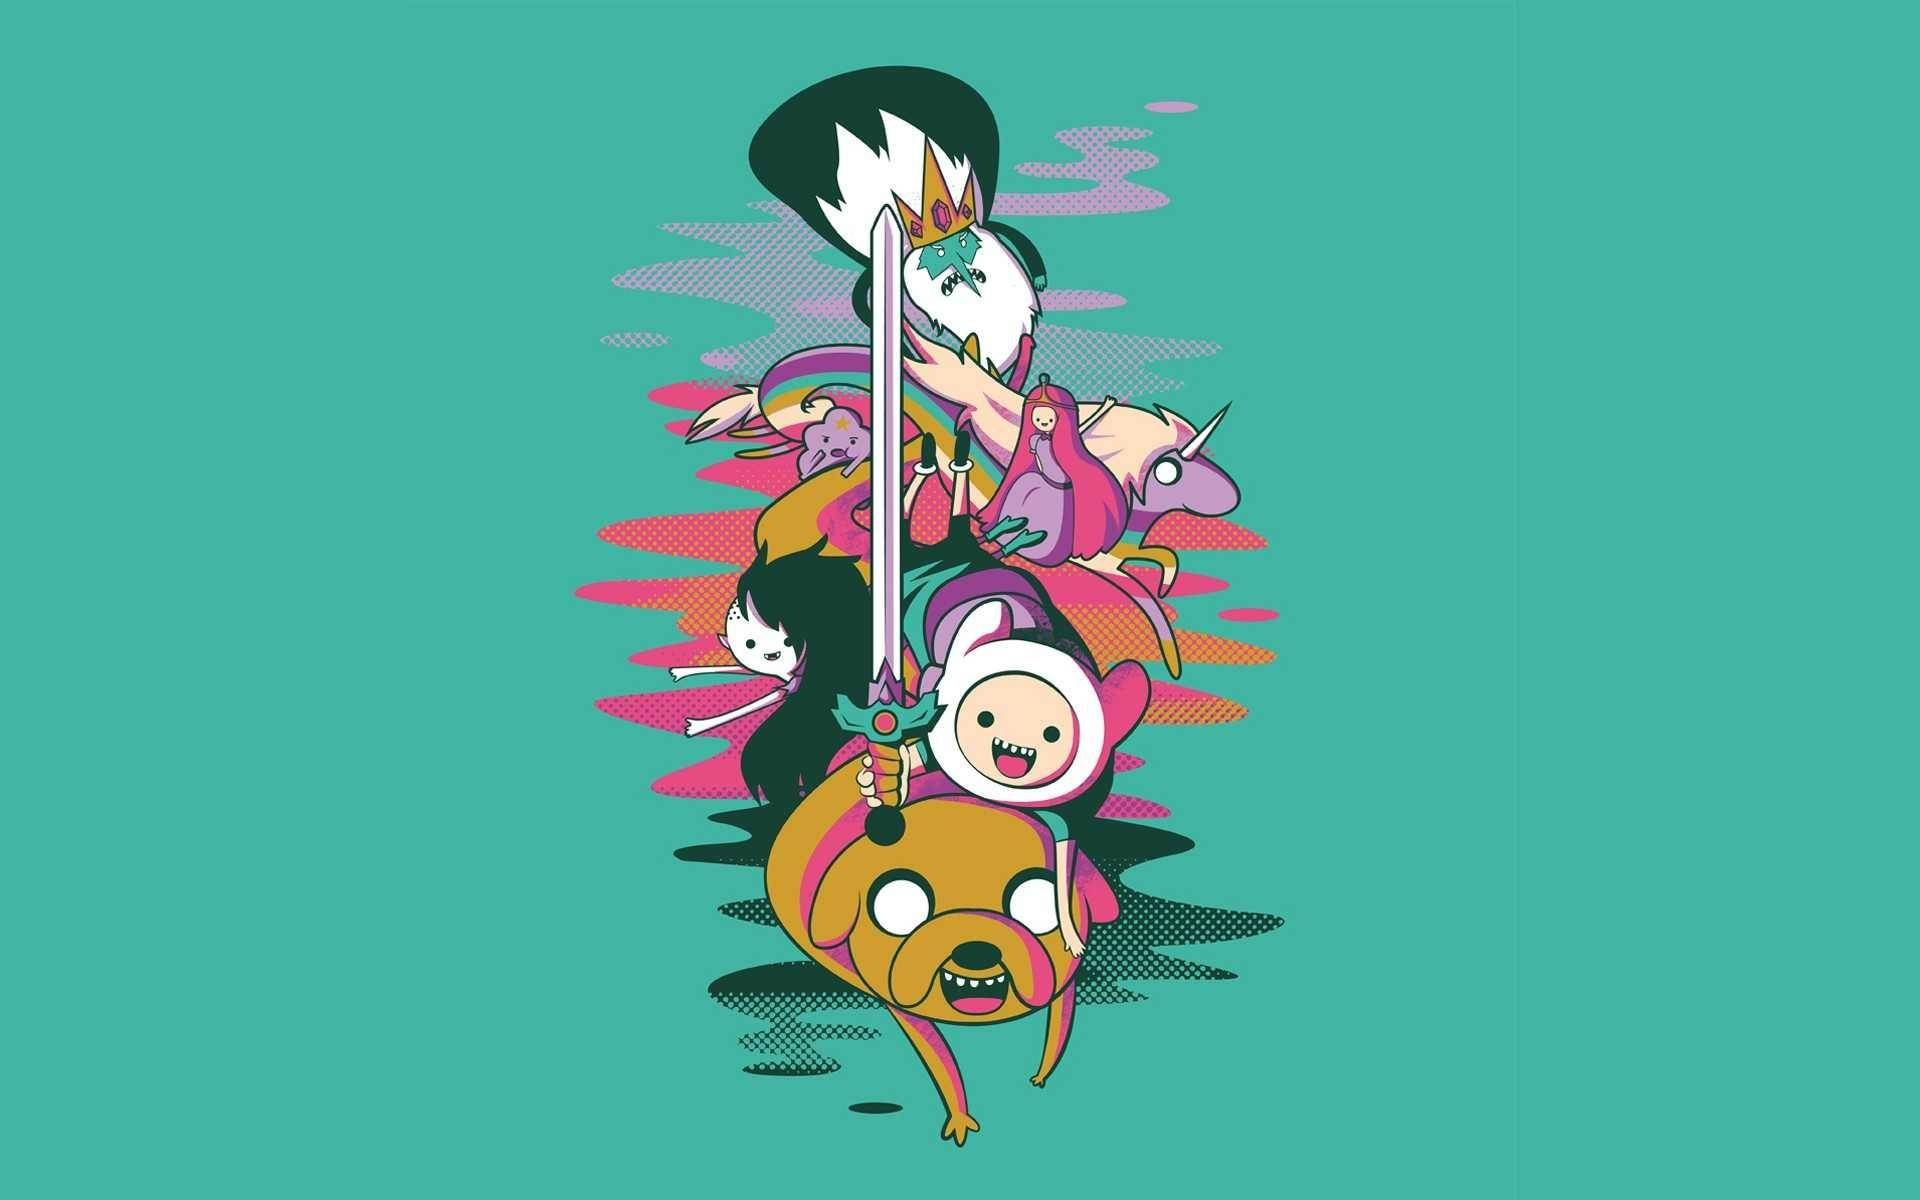 403678 adventure time adventure time alternative wallpaperg 1920 403678 adventure time adventure time alternative wallpaperg 19201200 thecheapjerseys Choice Image